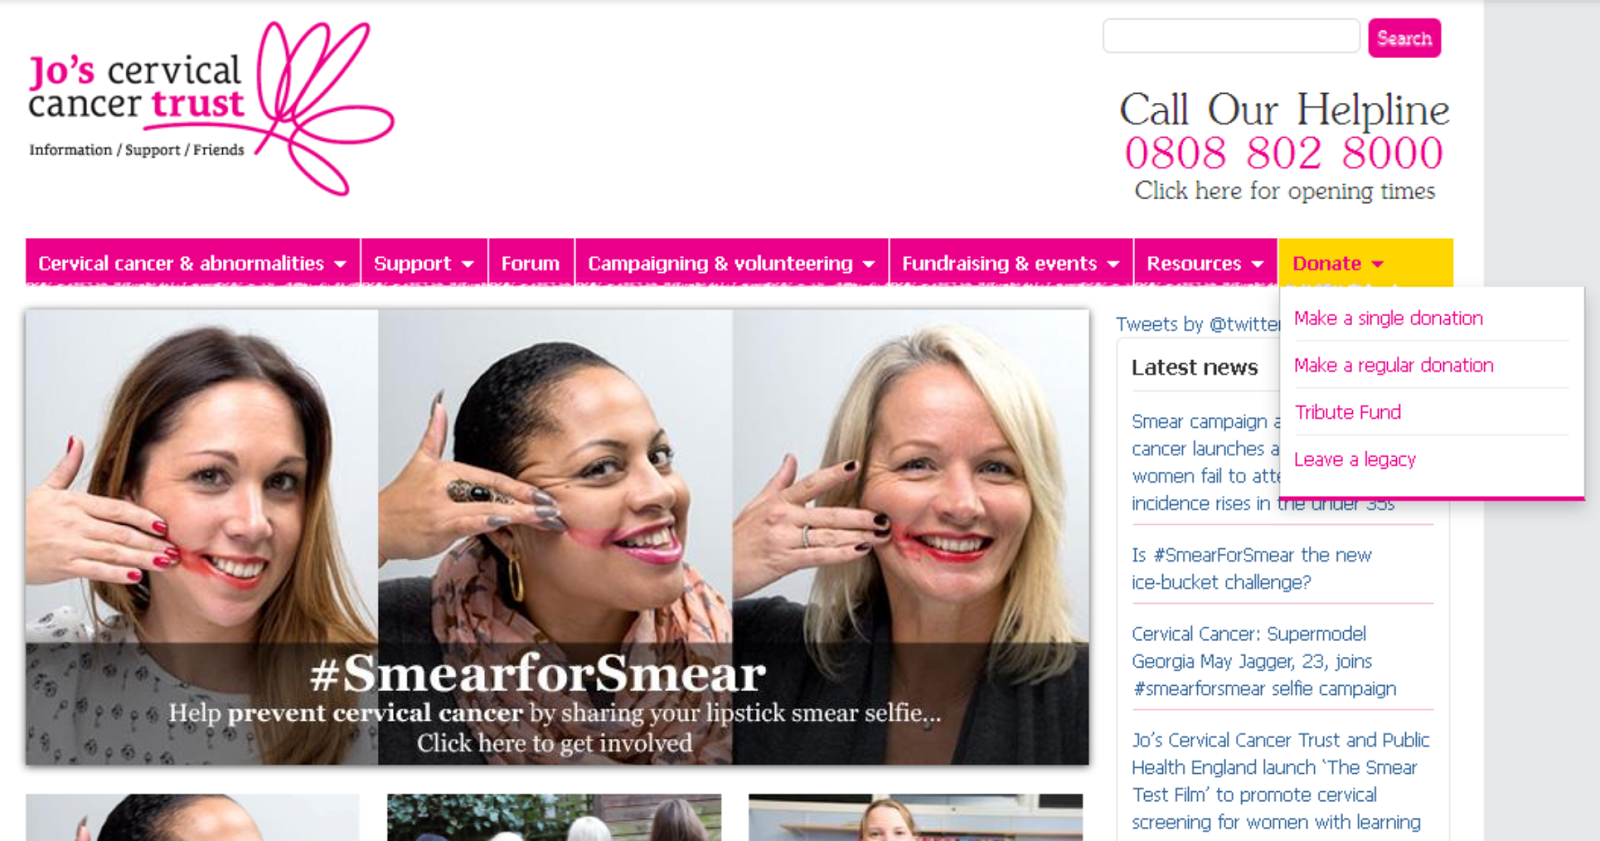 SmearforSmear: A New Campaign Reminds Us Of The Importance Of A Smear Test SmearforSmear: A New Campaign Reminds Us Of The Importance Of A Smear Test new photo